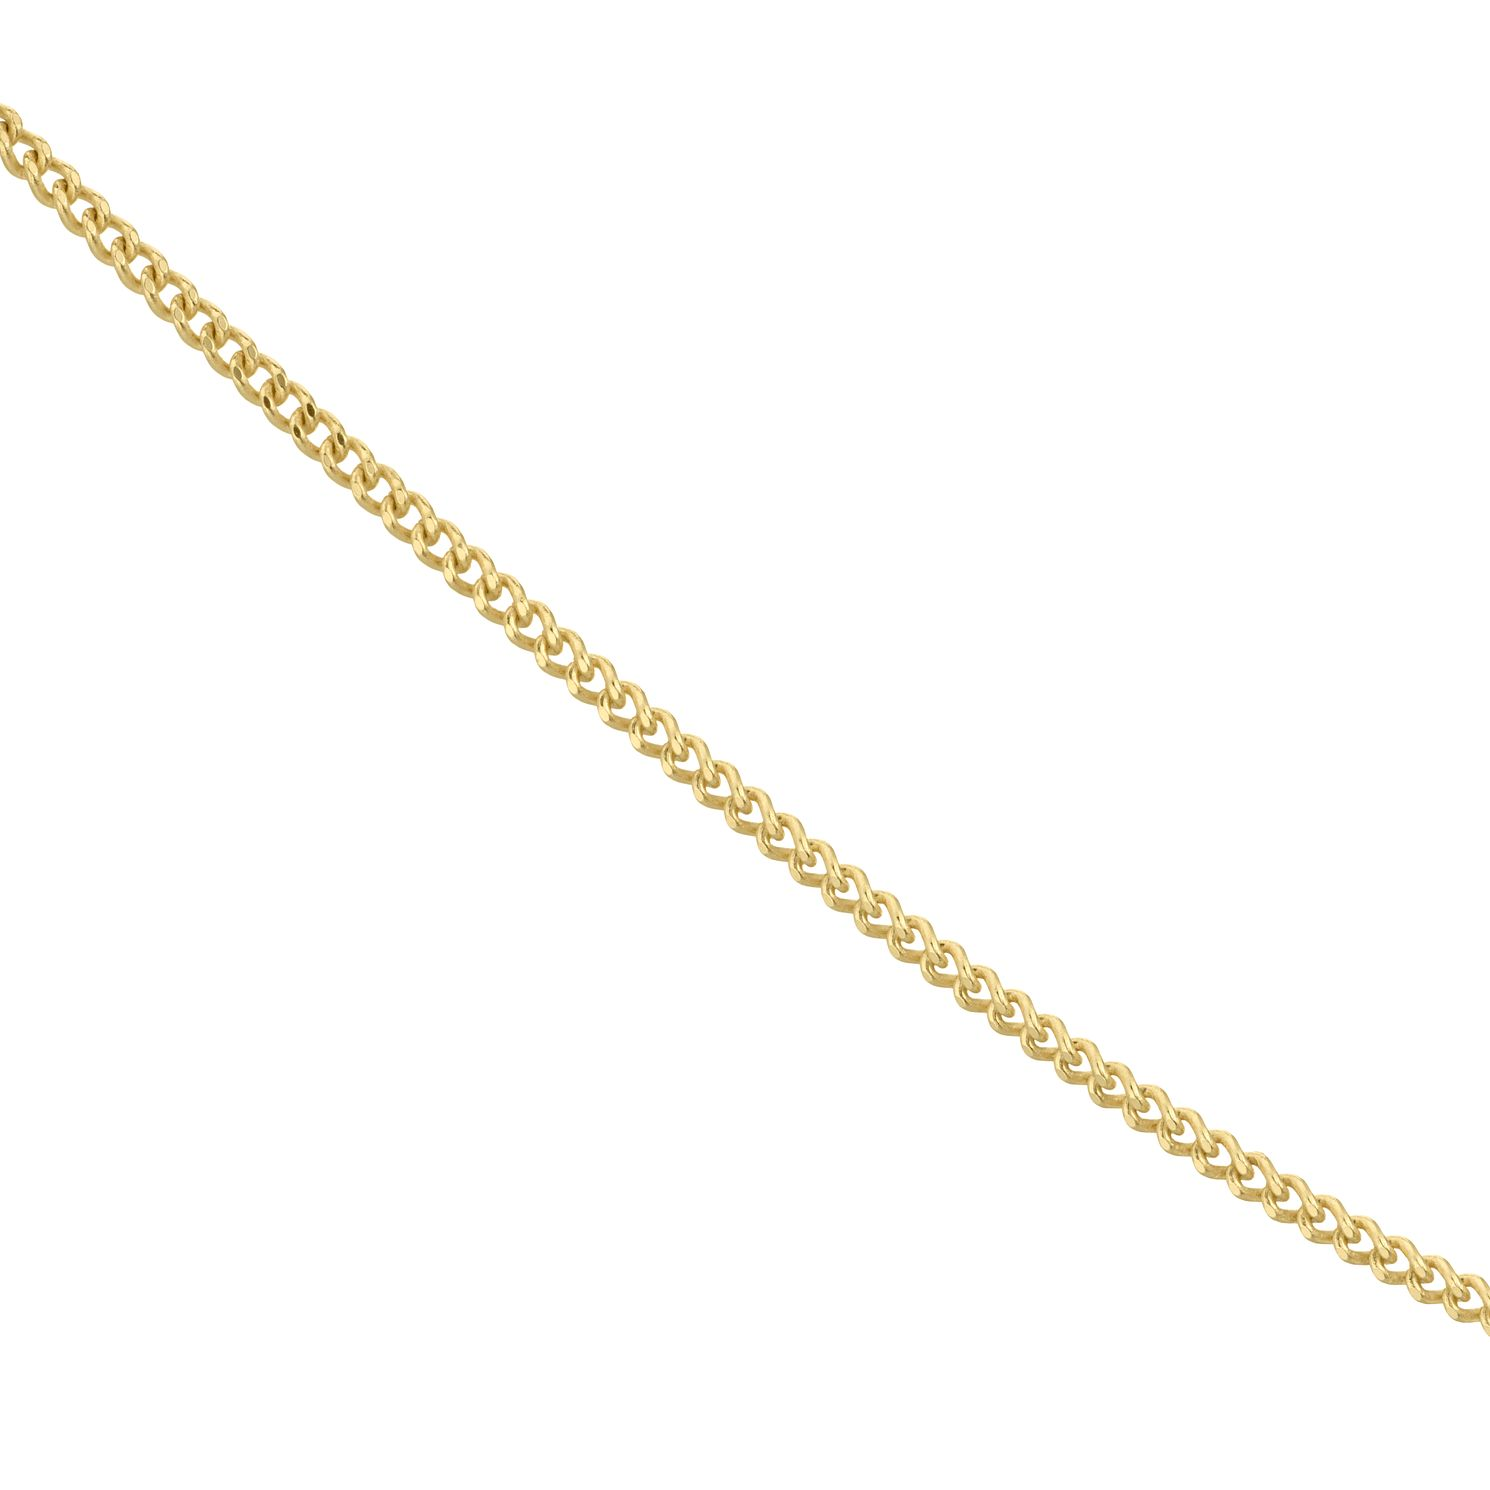 18ct Yellow Gold 18 inches Curb Chain Necklace - Product number 4681916